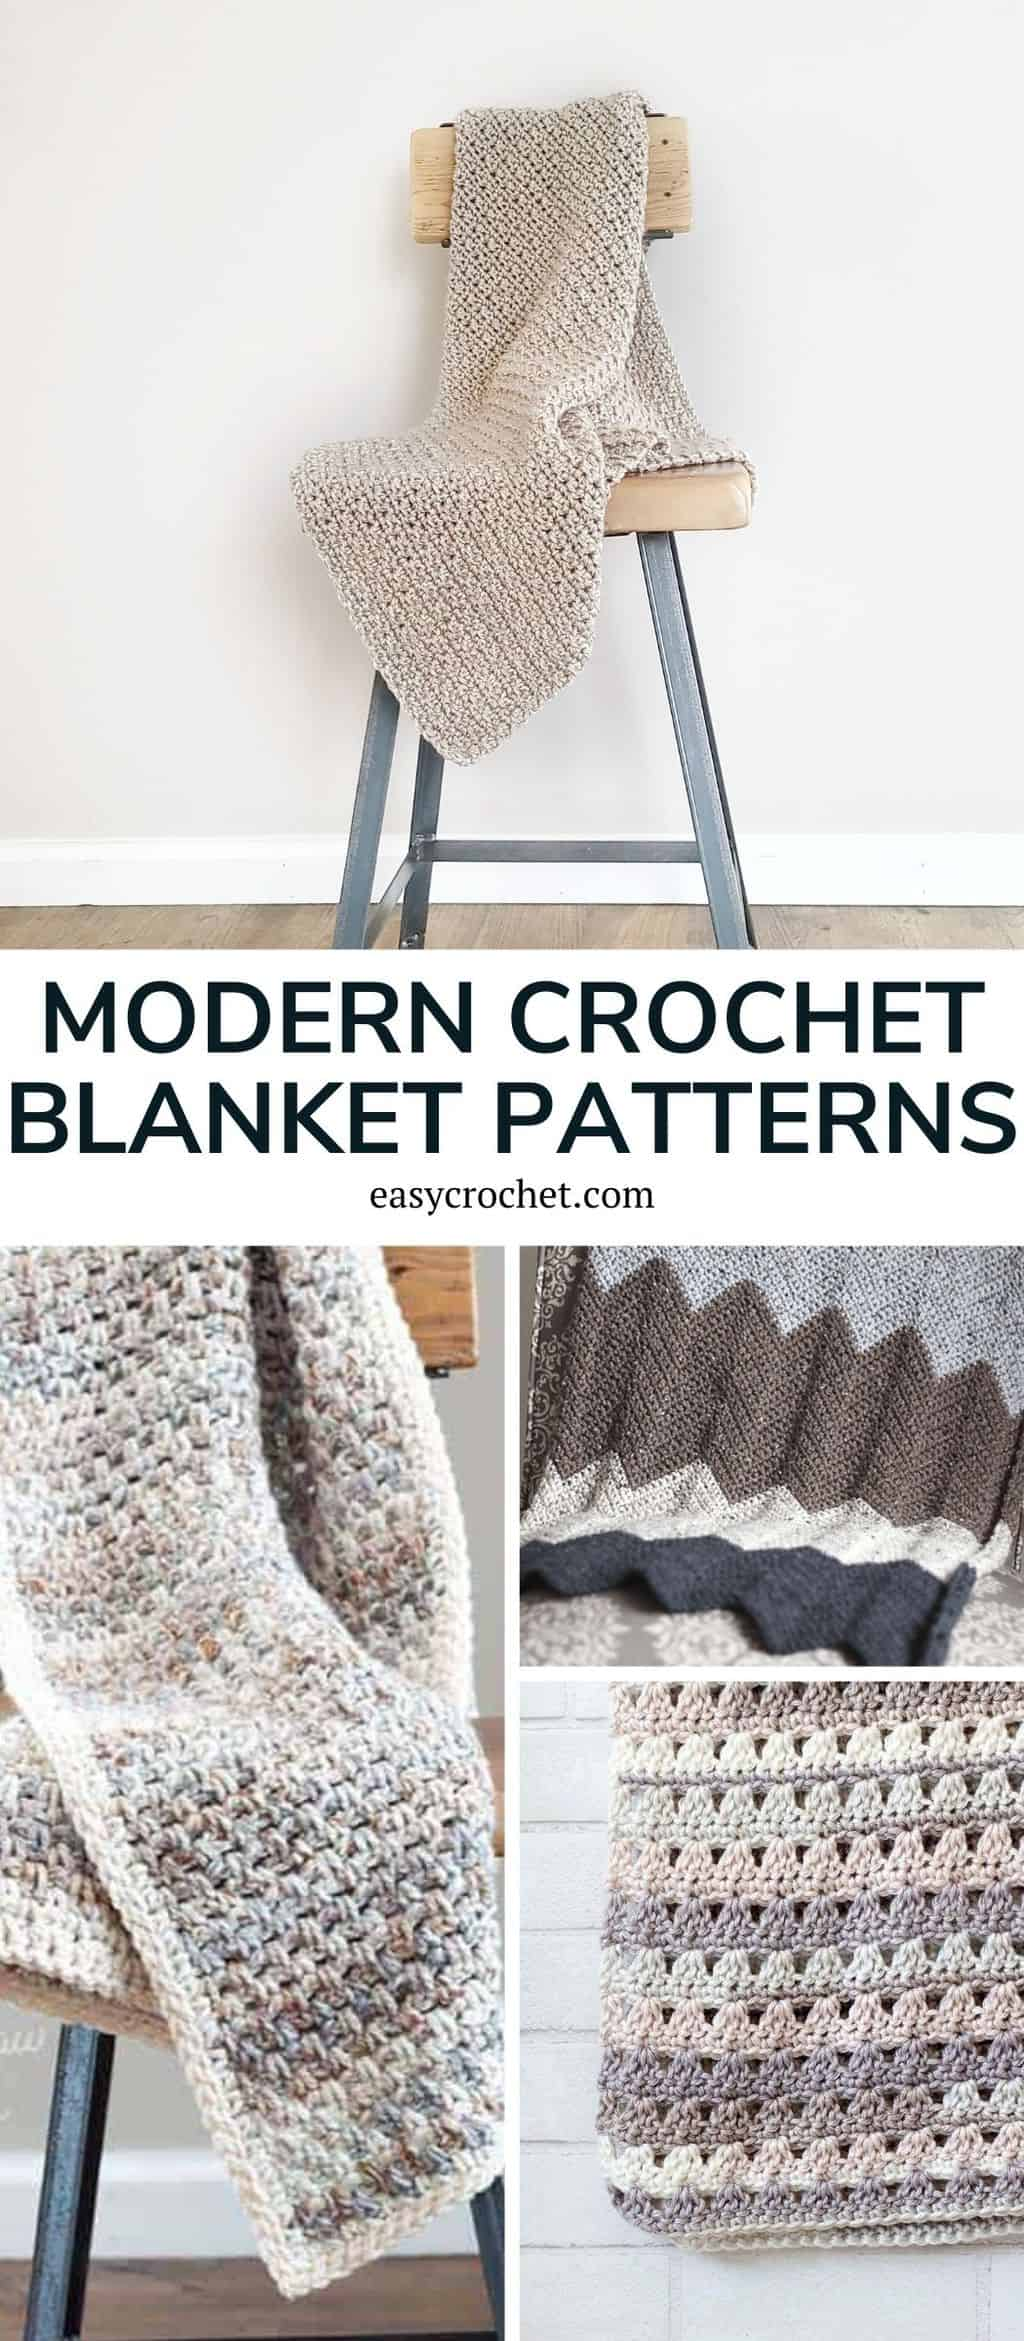 Unique modern crochet blanket patterns